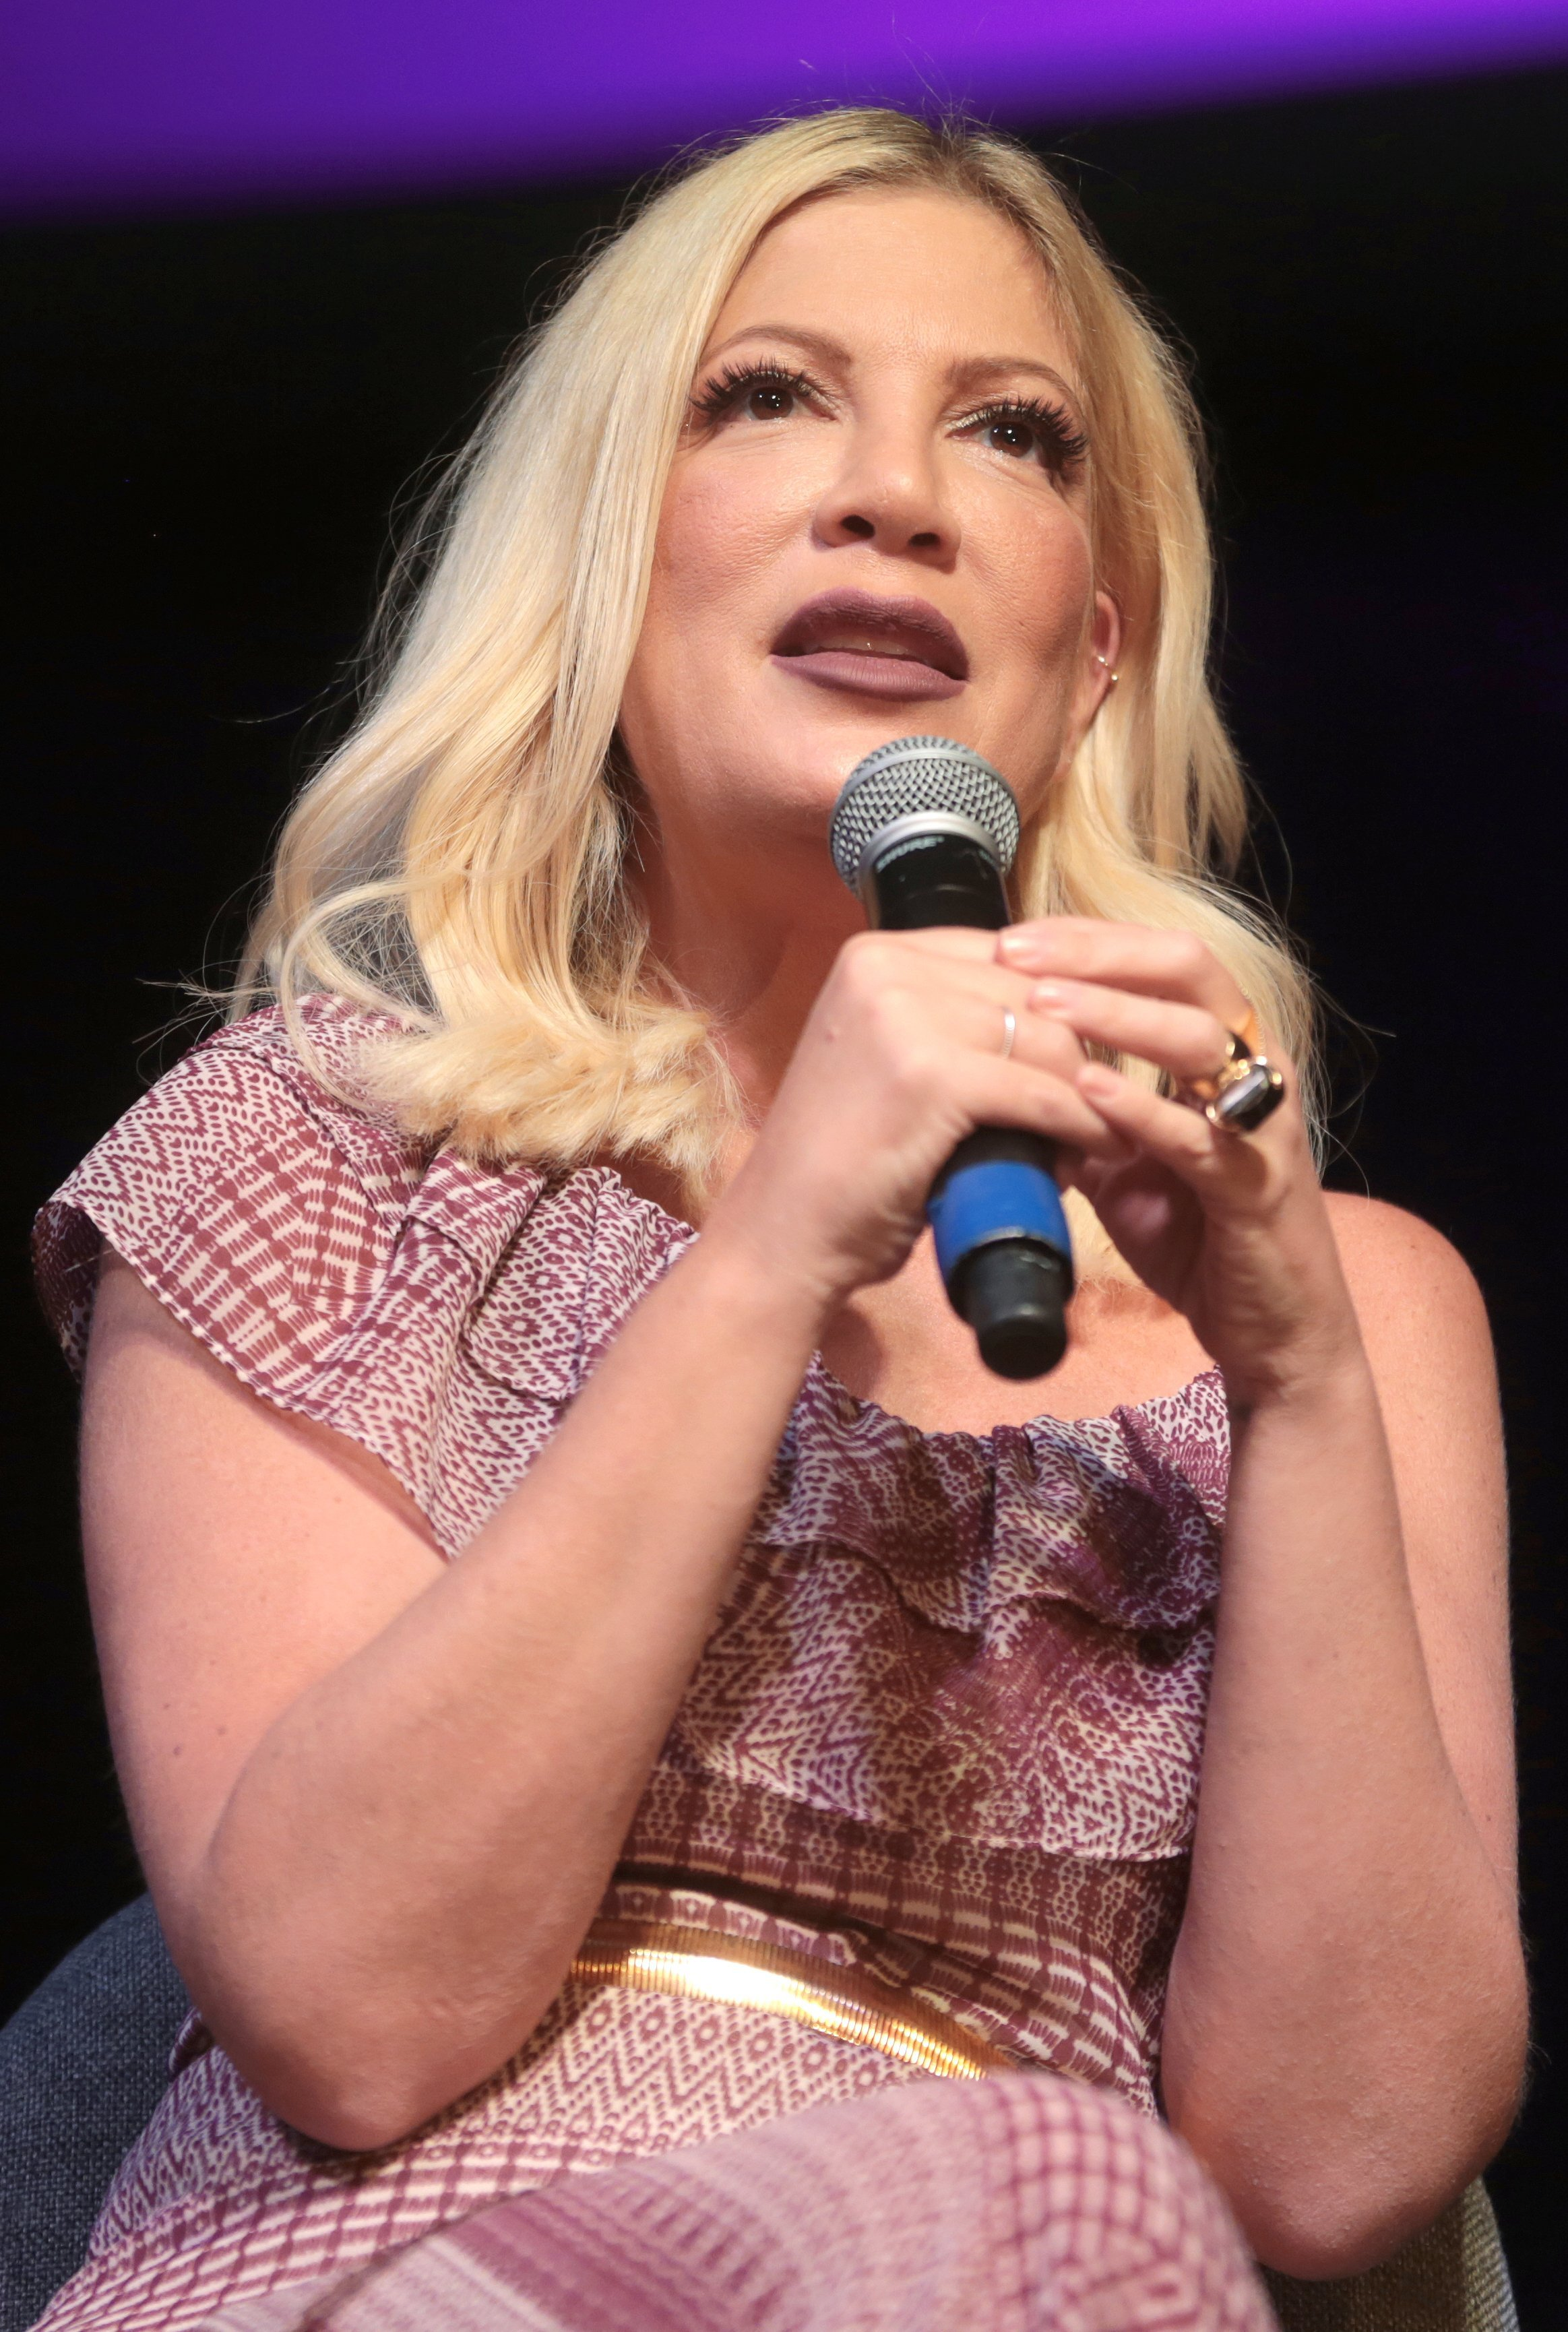 Tori Spelling speaking at an event in Phoenix, Arizona. | Source: Wikimedia Commons